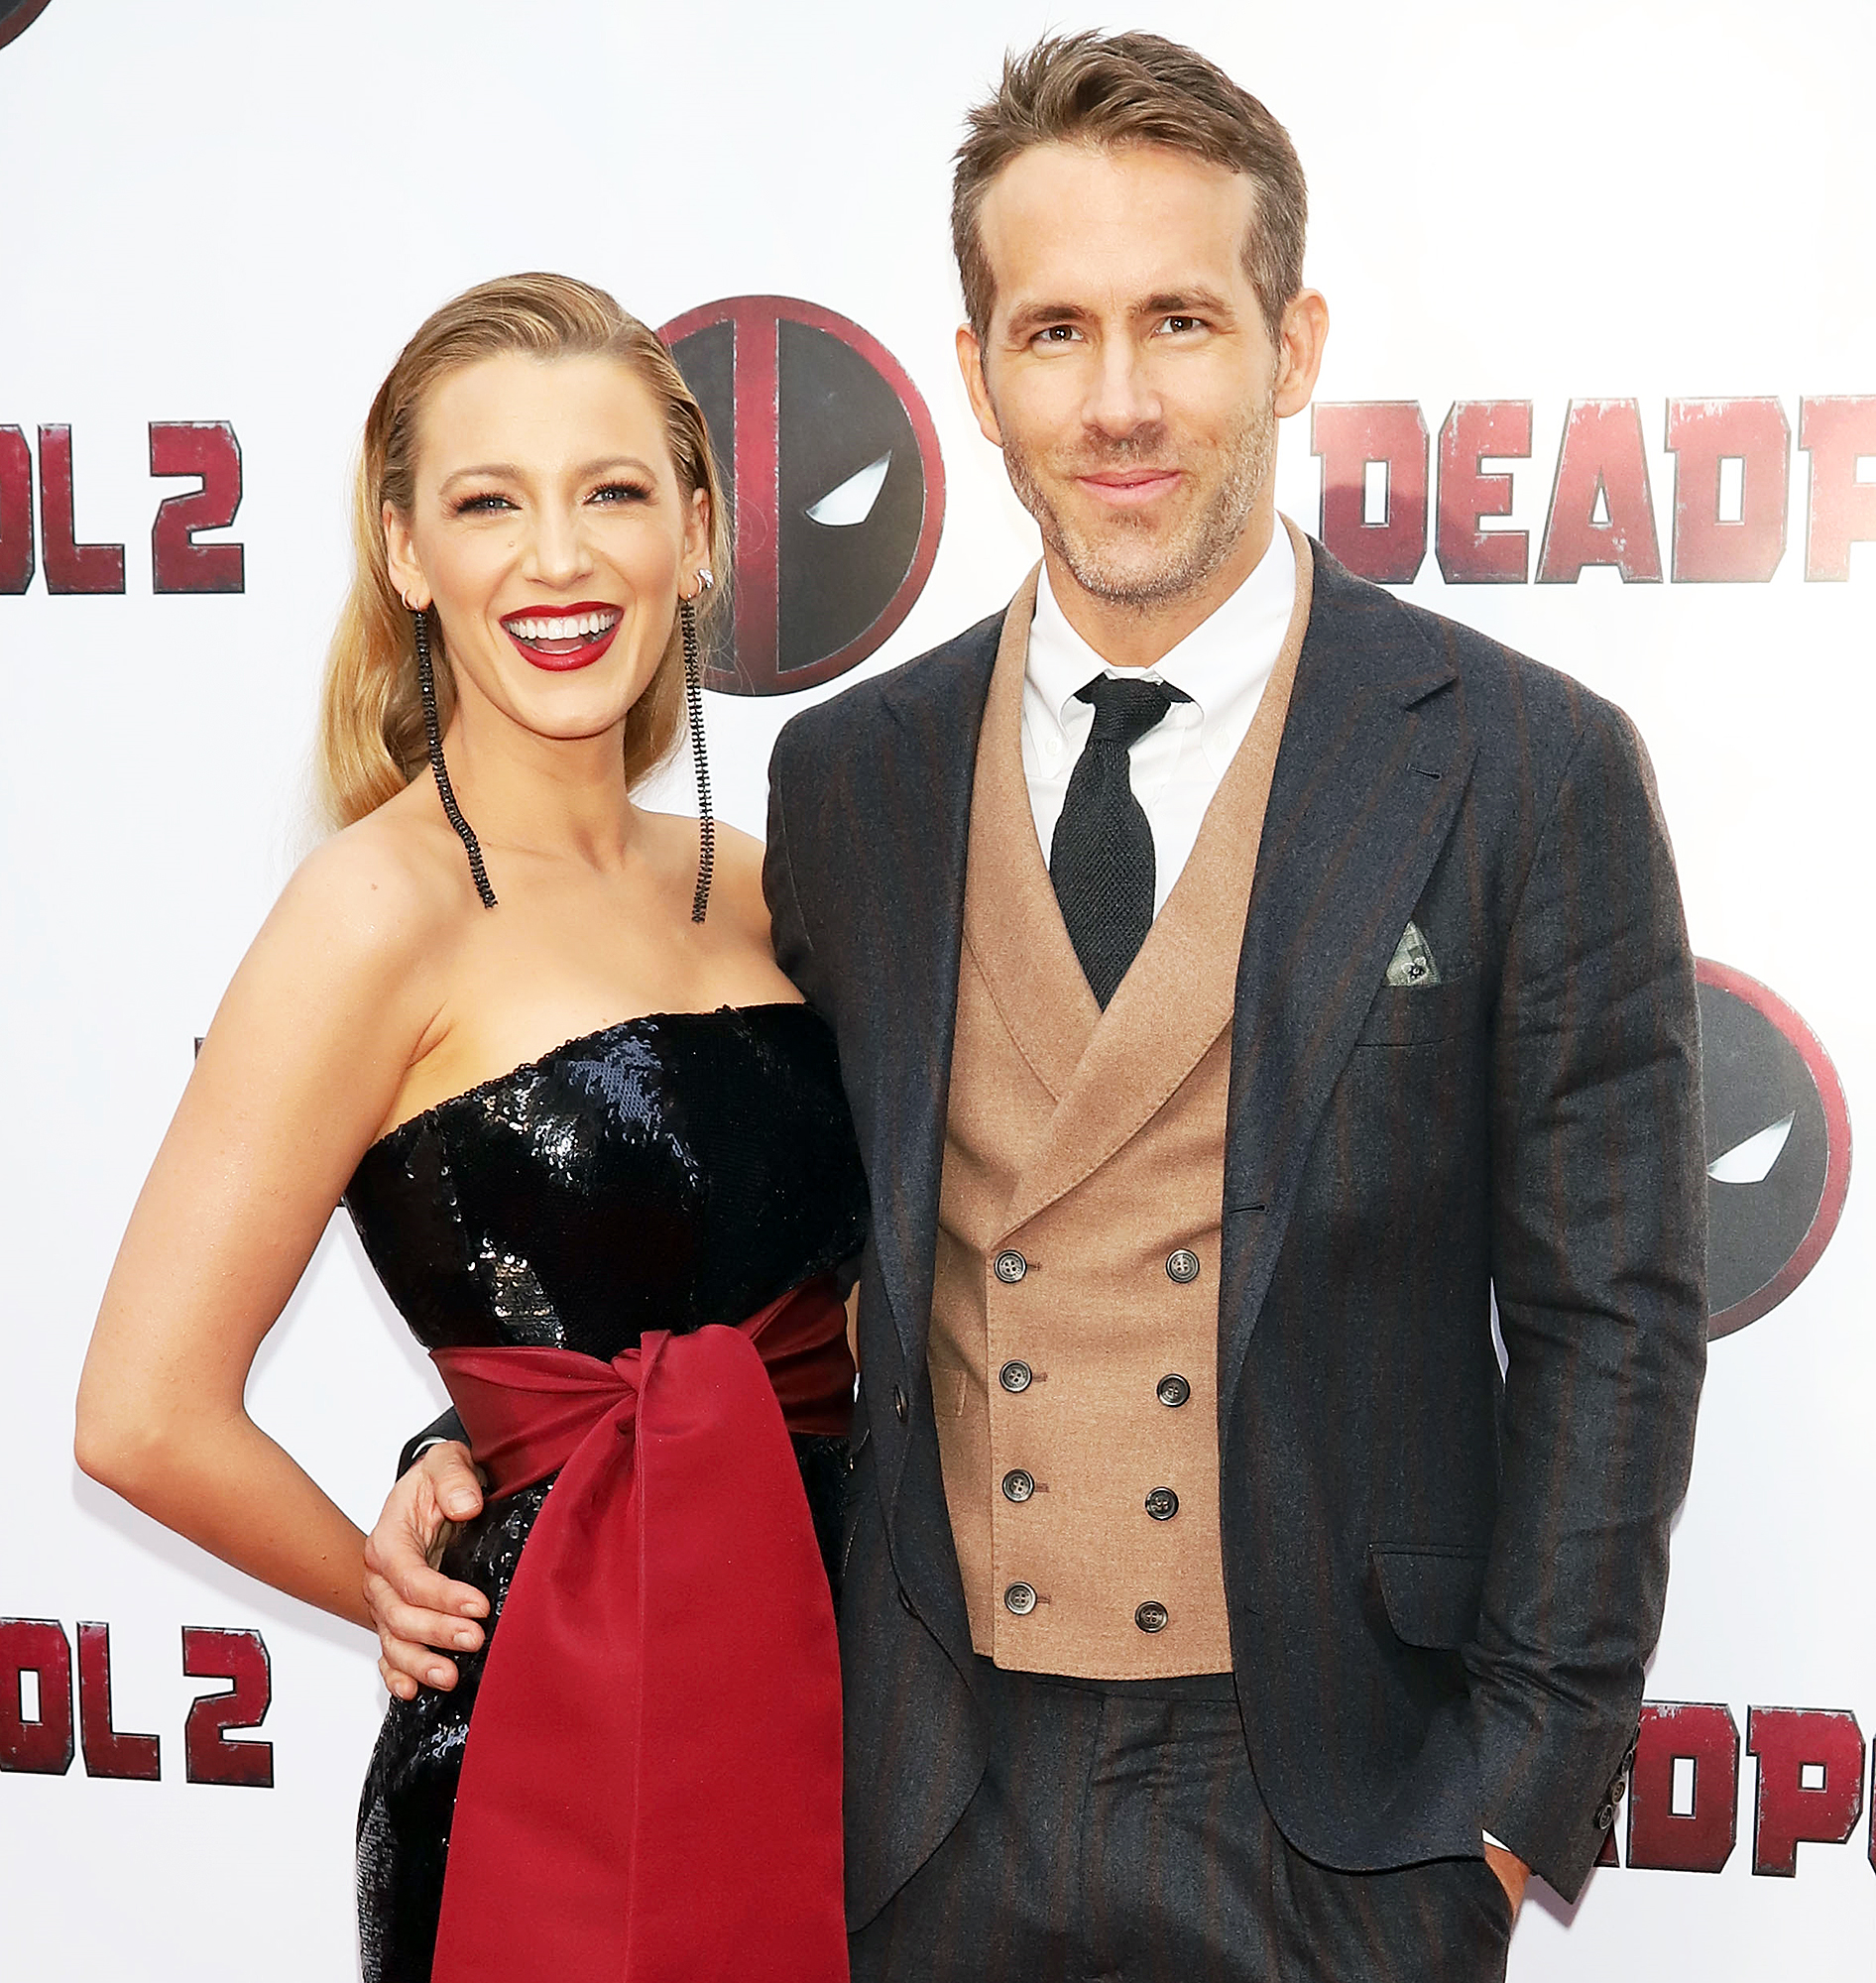 Ryan Reynolds Blake Lively Anna Kendrick Cheating Joke